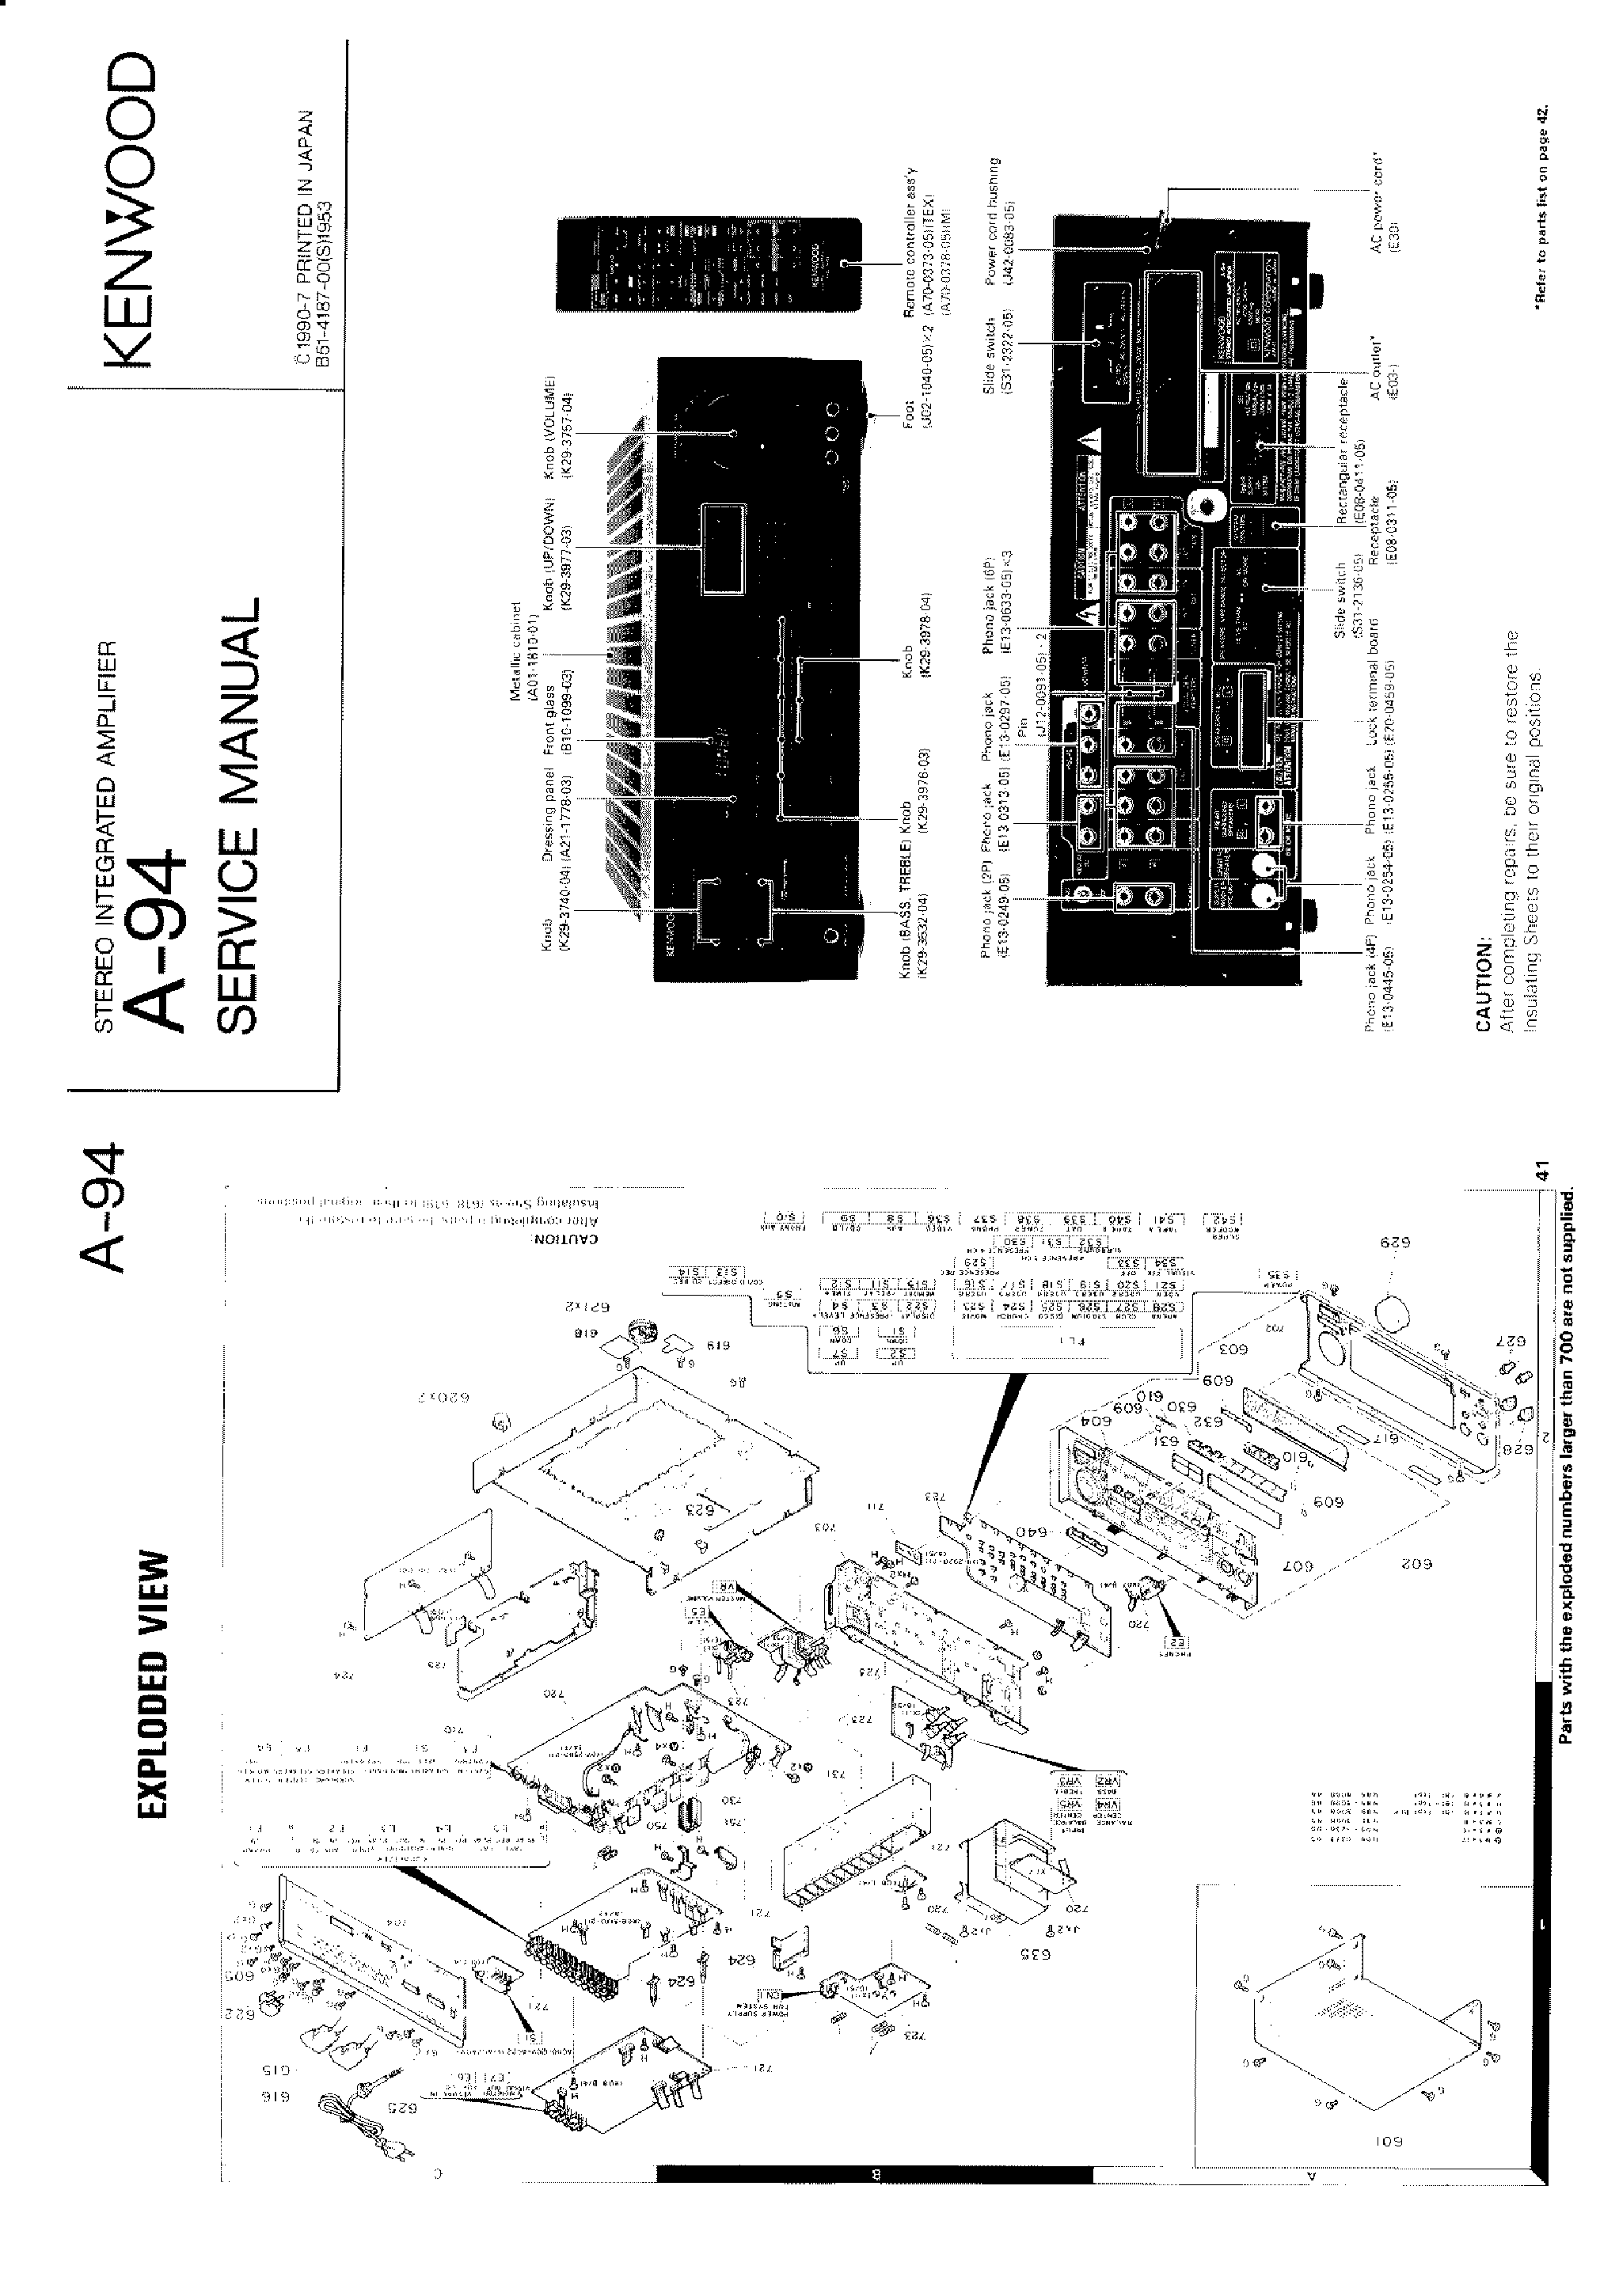 Kenwood A 94 Stereo Integrated Amplifier Service Manual Download Schematics Eeprom Repair